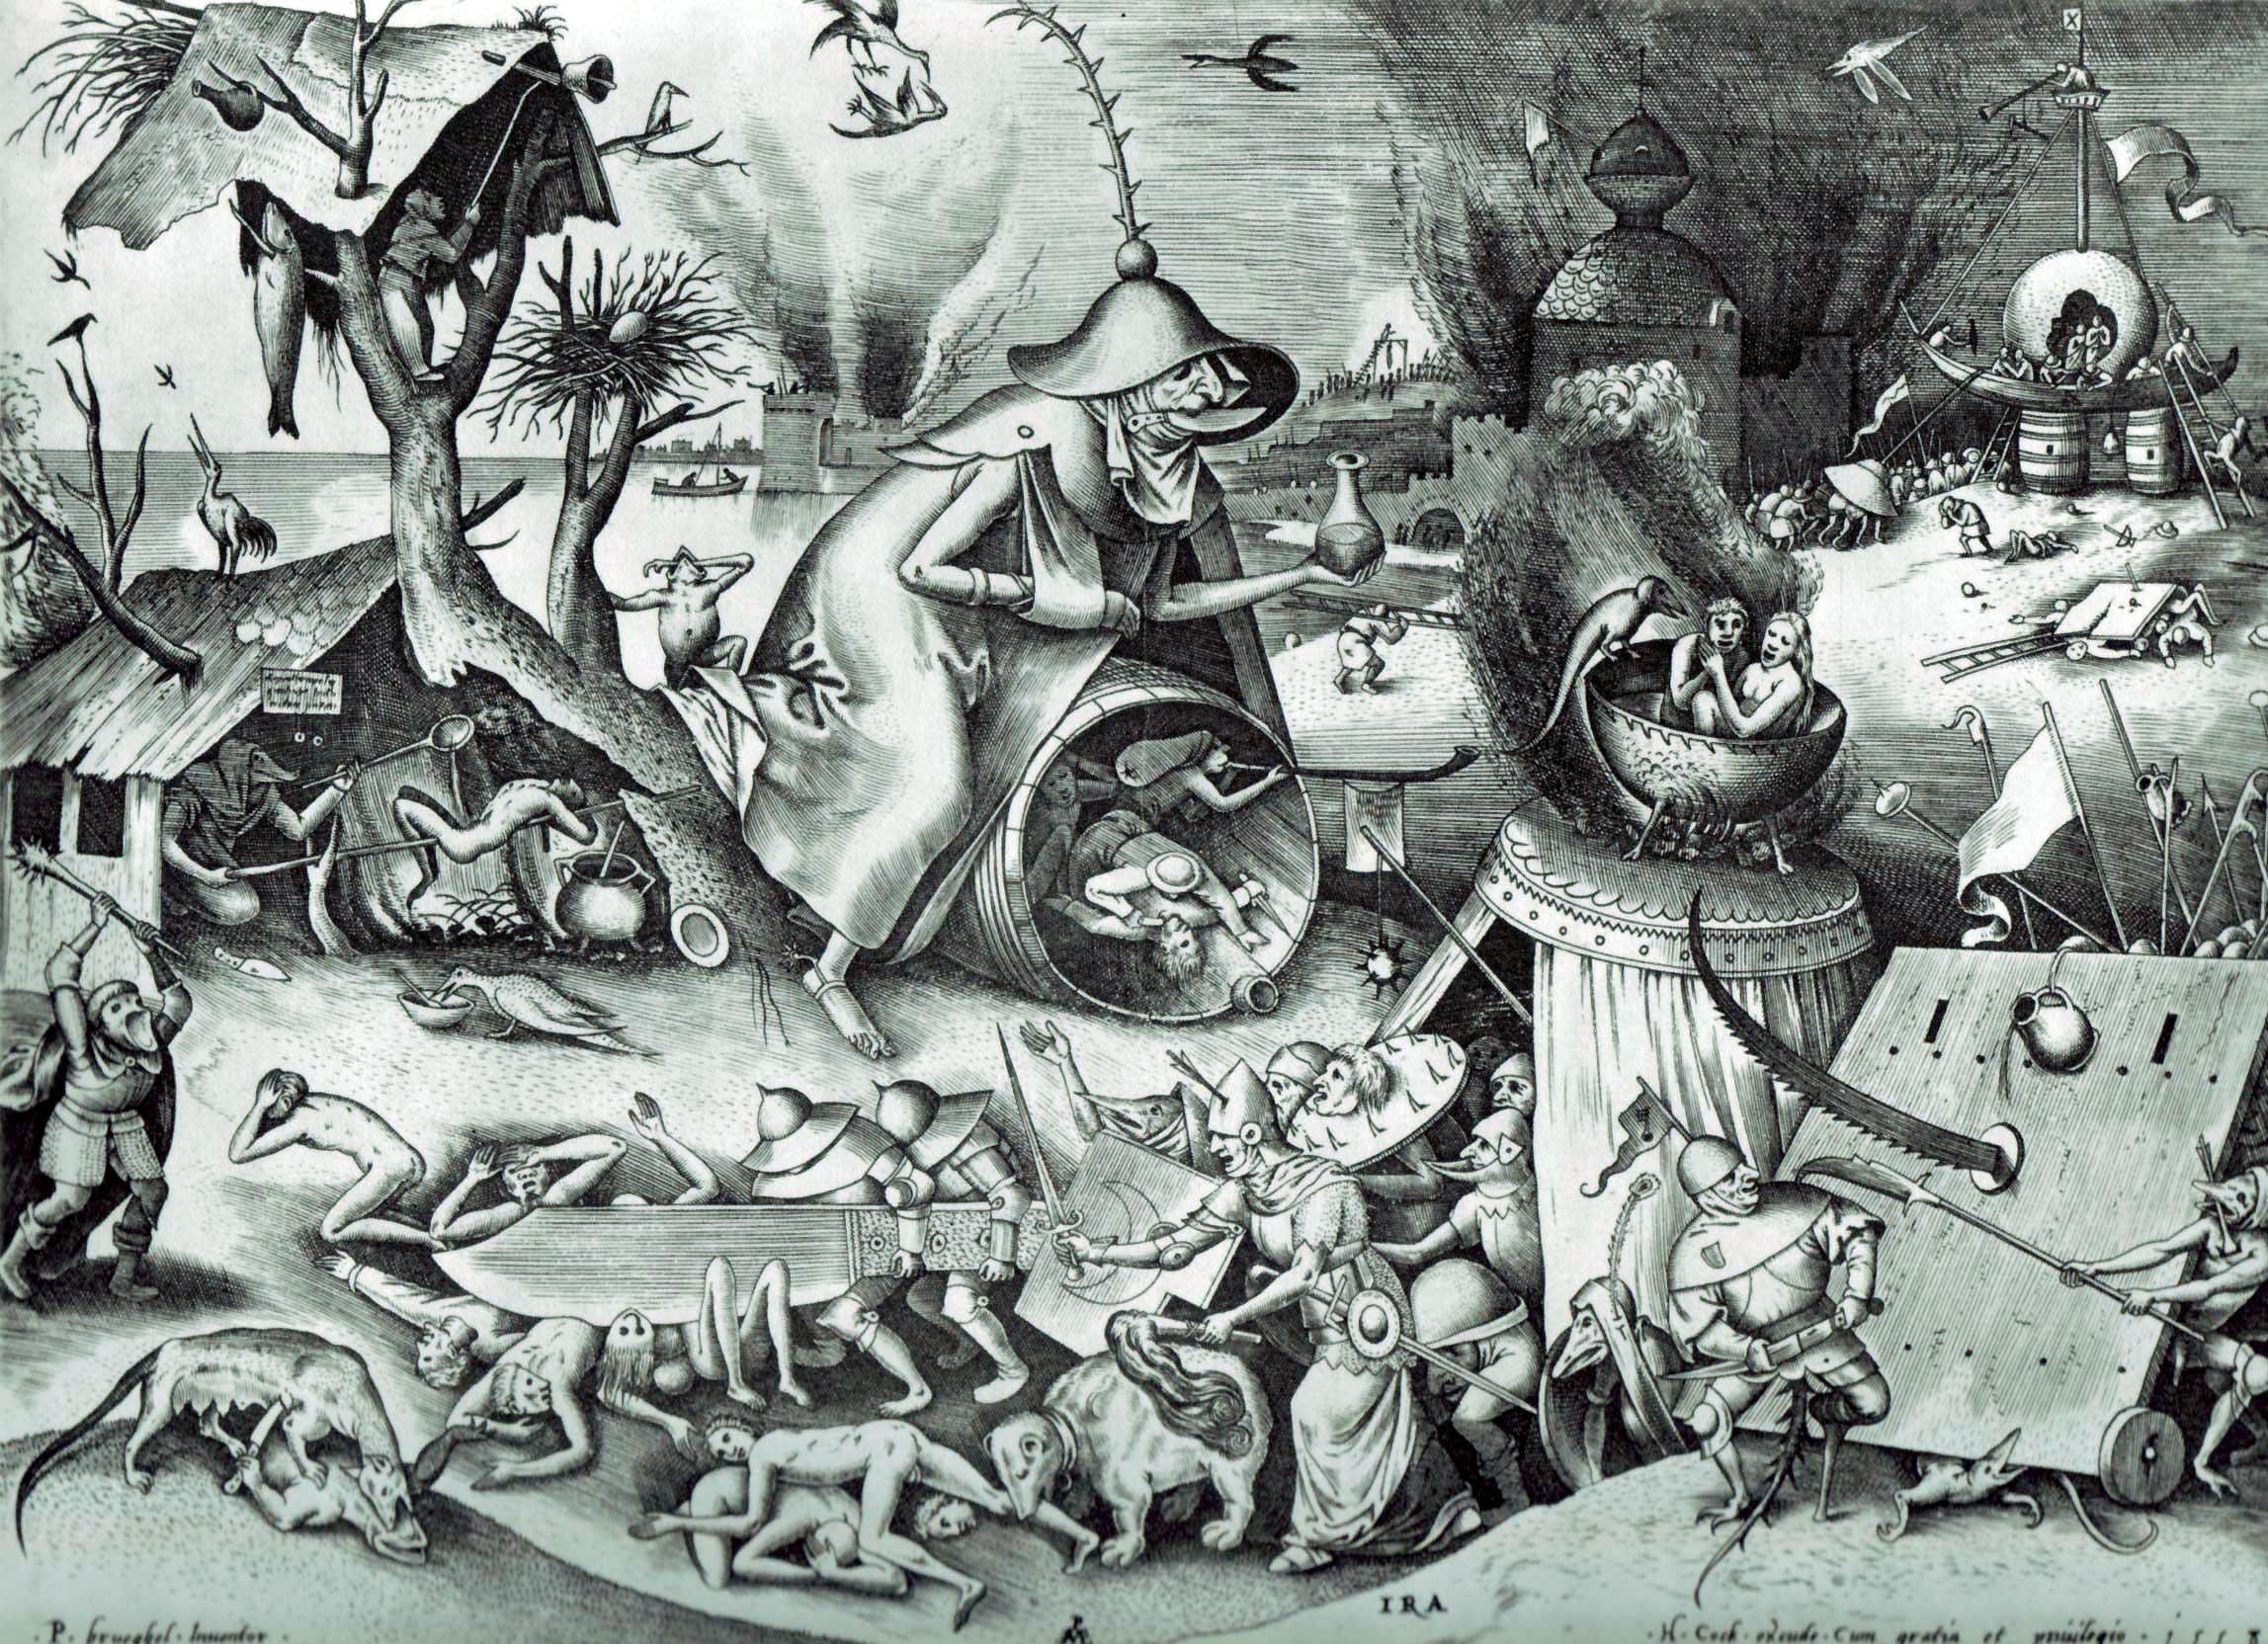 Pieter Bruegel the Elder: The Seven Deadly Sins or the Seven Vices - Anger